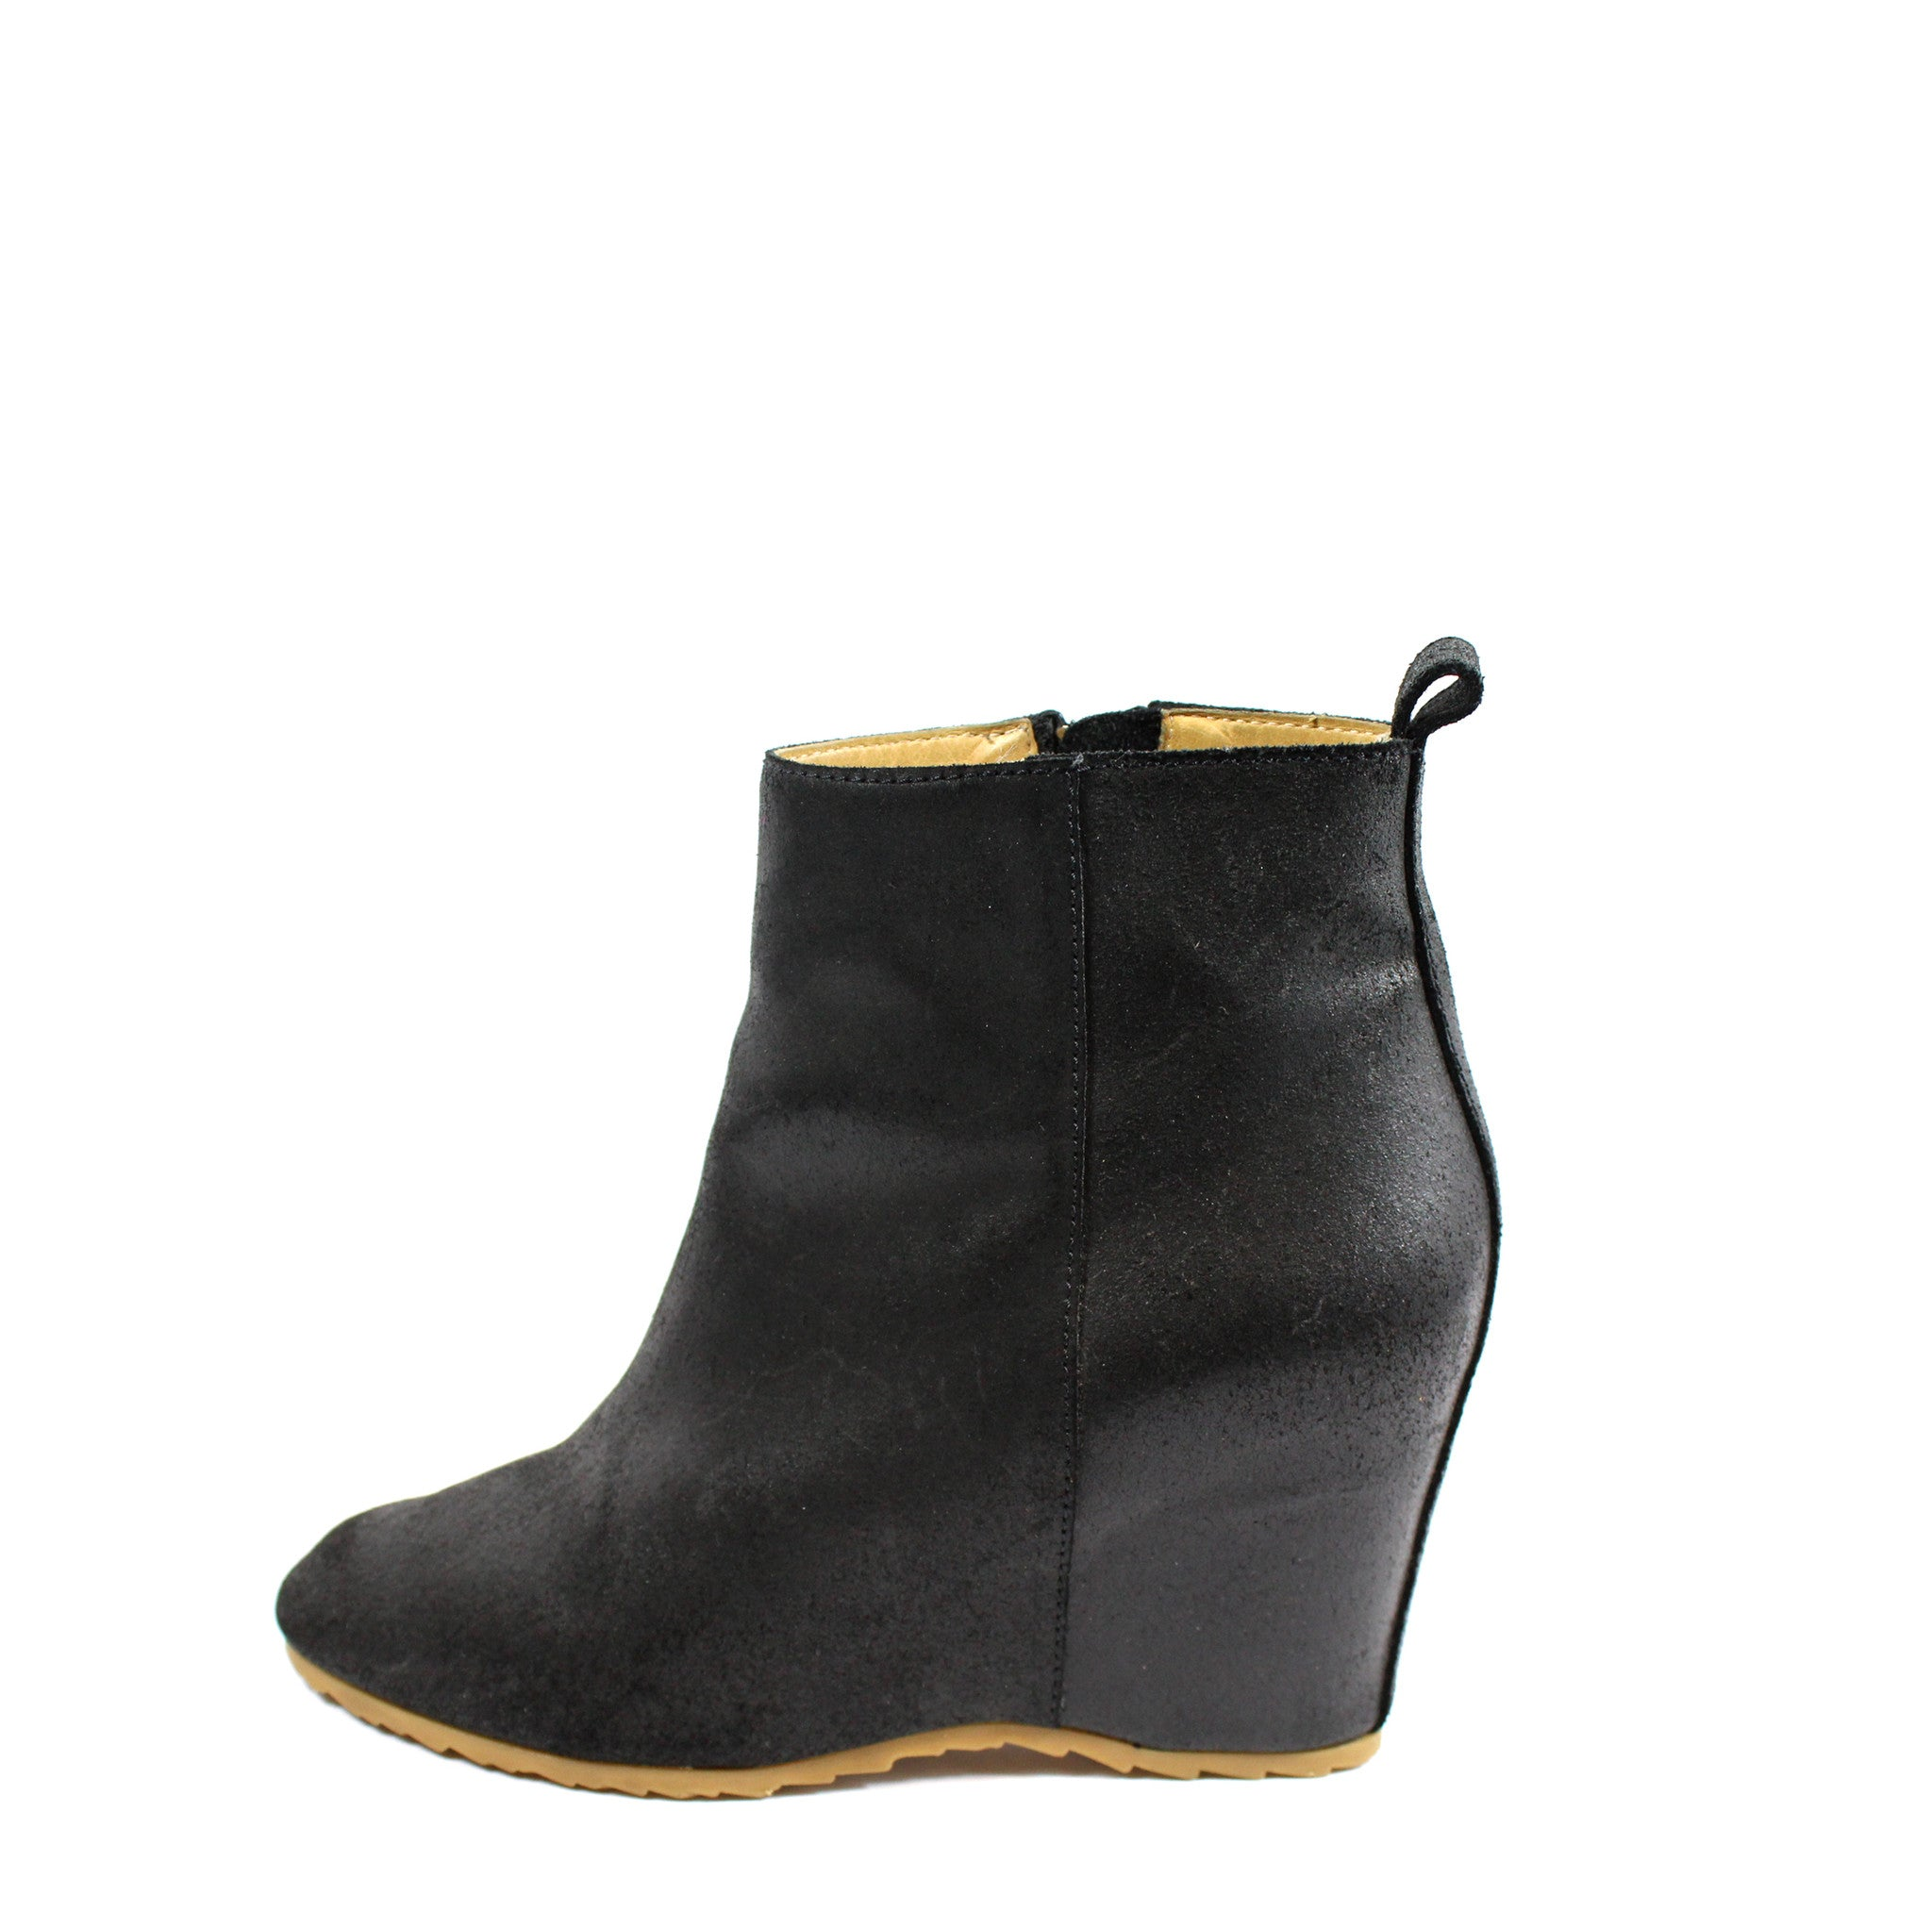 MM6 Maison Margiela Wedge Booties - Encore Consignment - 1